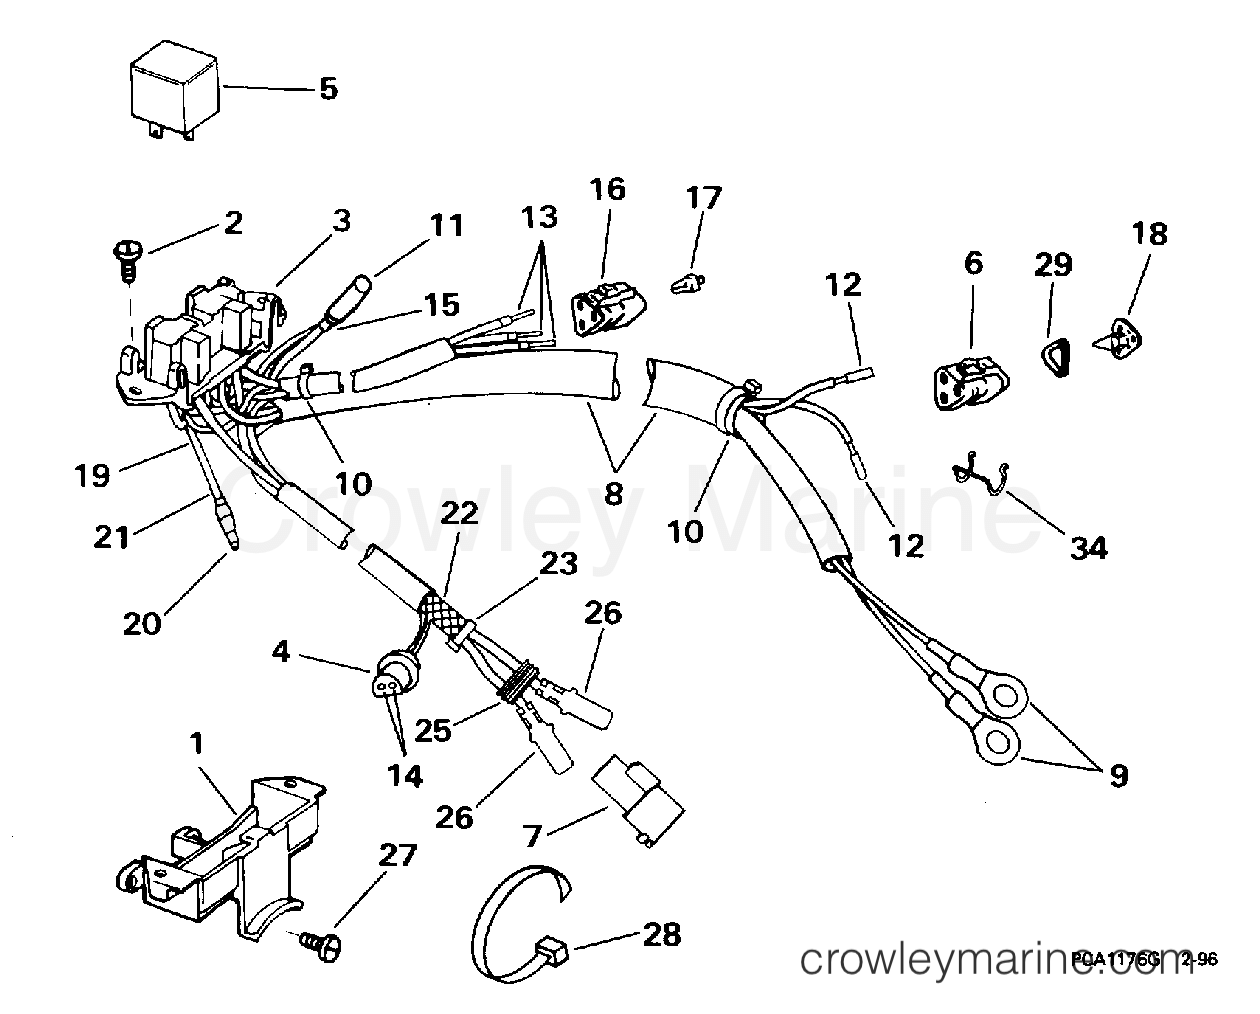 Power Trim Tilt Electrical 1996 Evinrude Outboards 115 Be115eledr Mercury Outboard Wiring Diagram Section